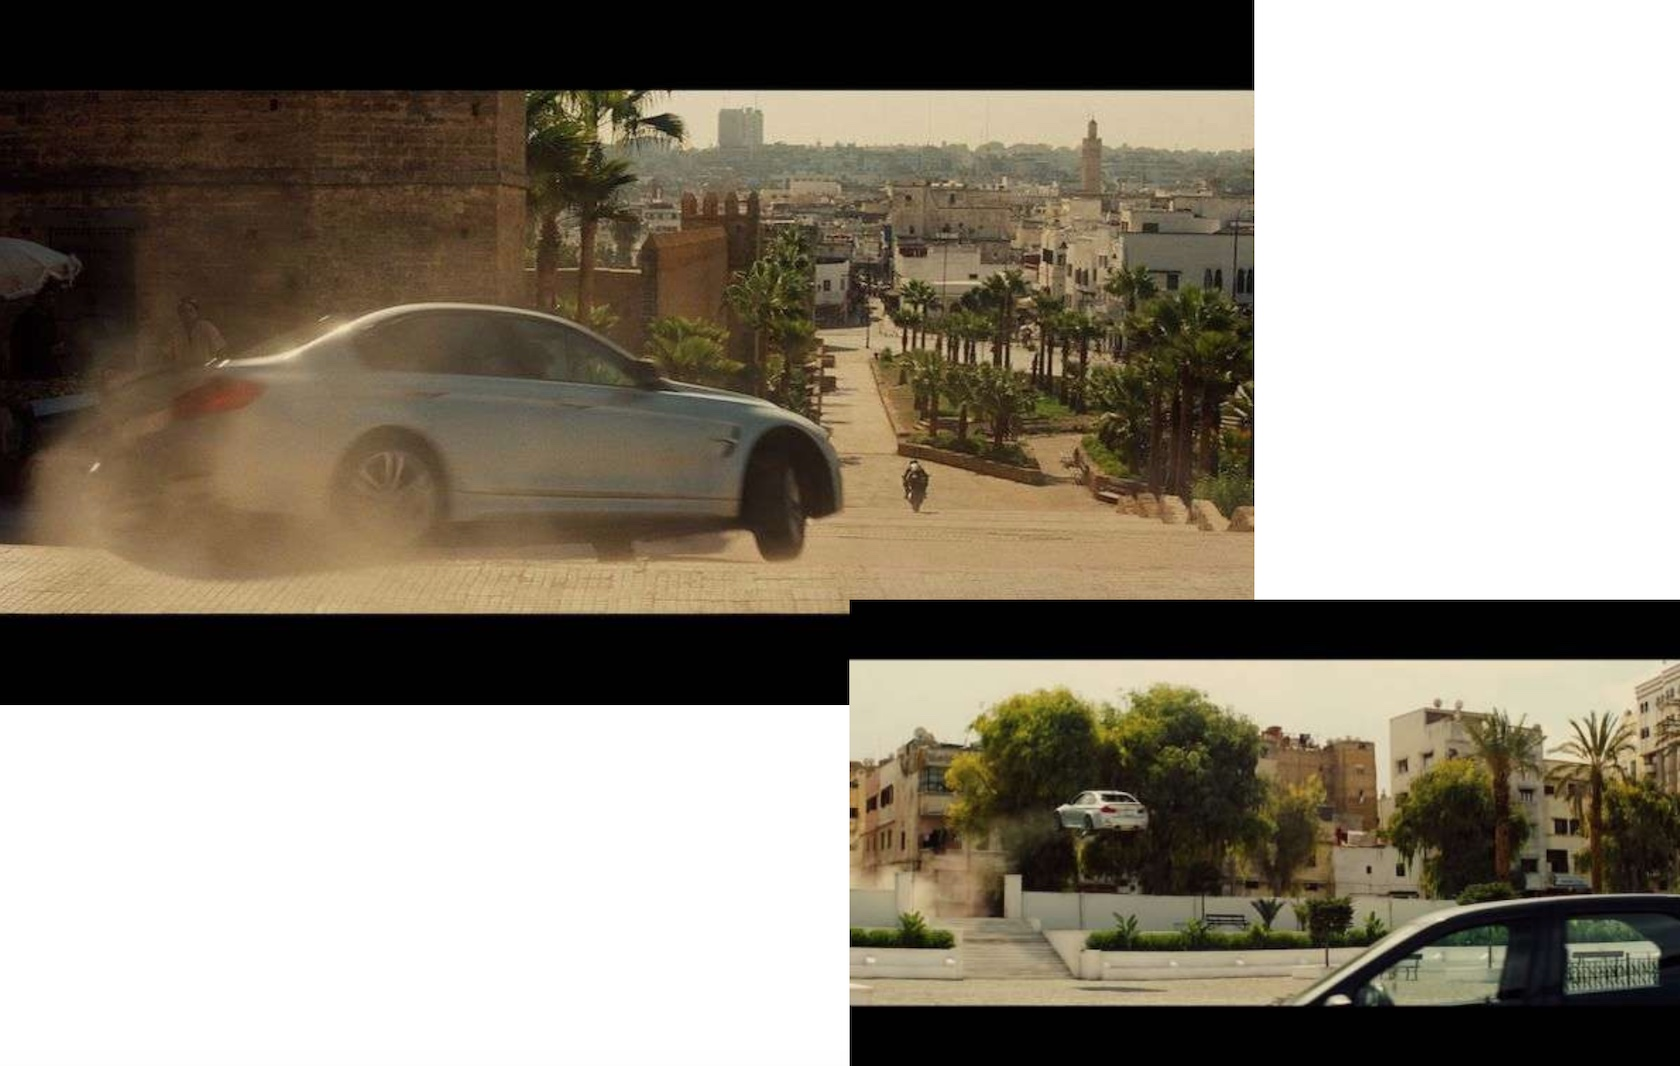 BMW M3 in Mission: Impossible - Rogue Nation